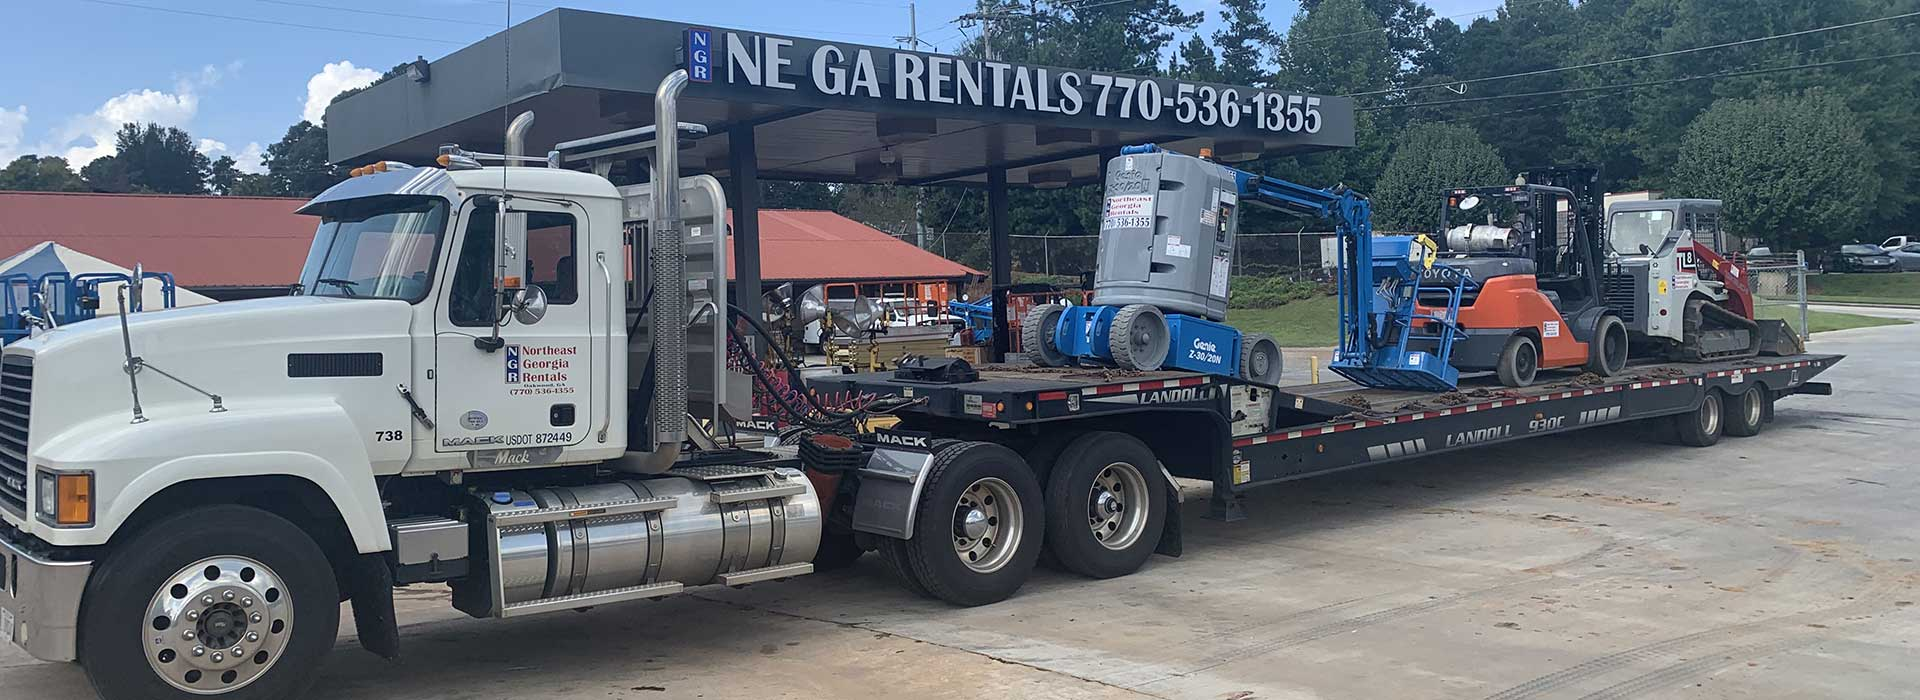 Equipment & Tool Rentals in Oakwood Georgia, Gainesville, Buford, Cumming, Cleveland, Cornelia GA